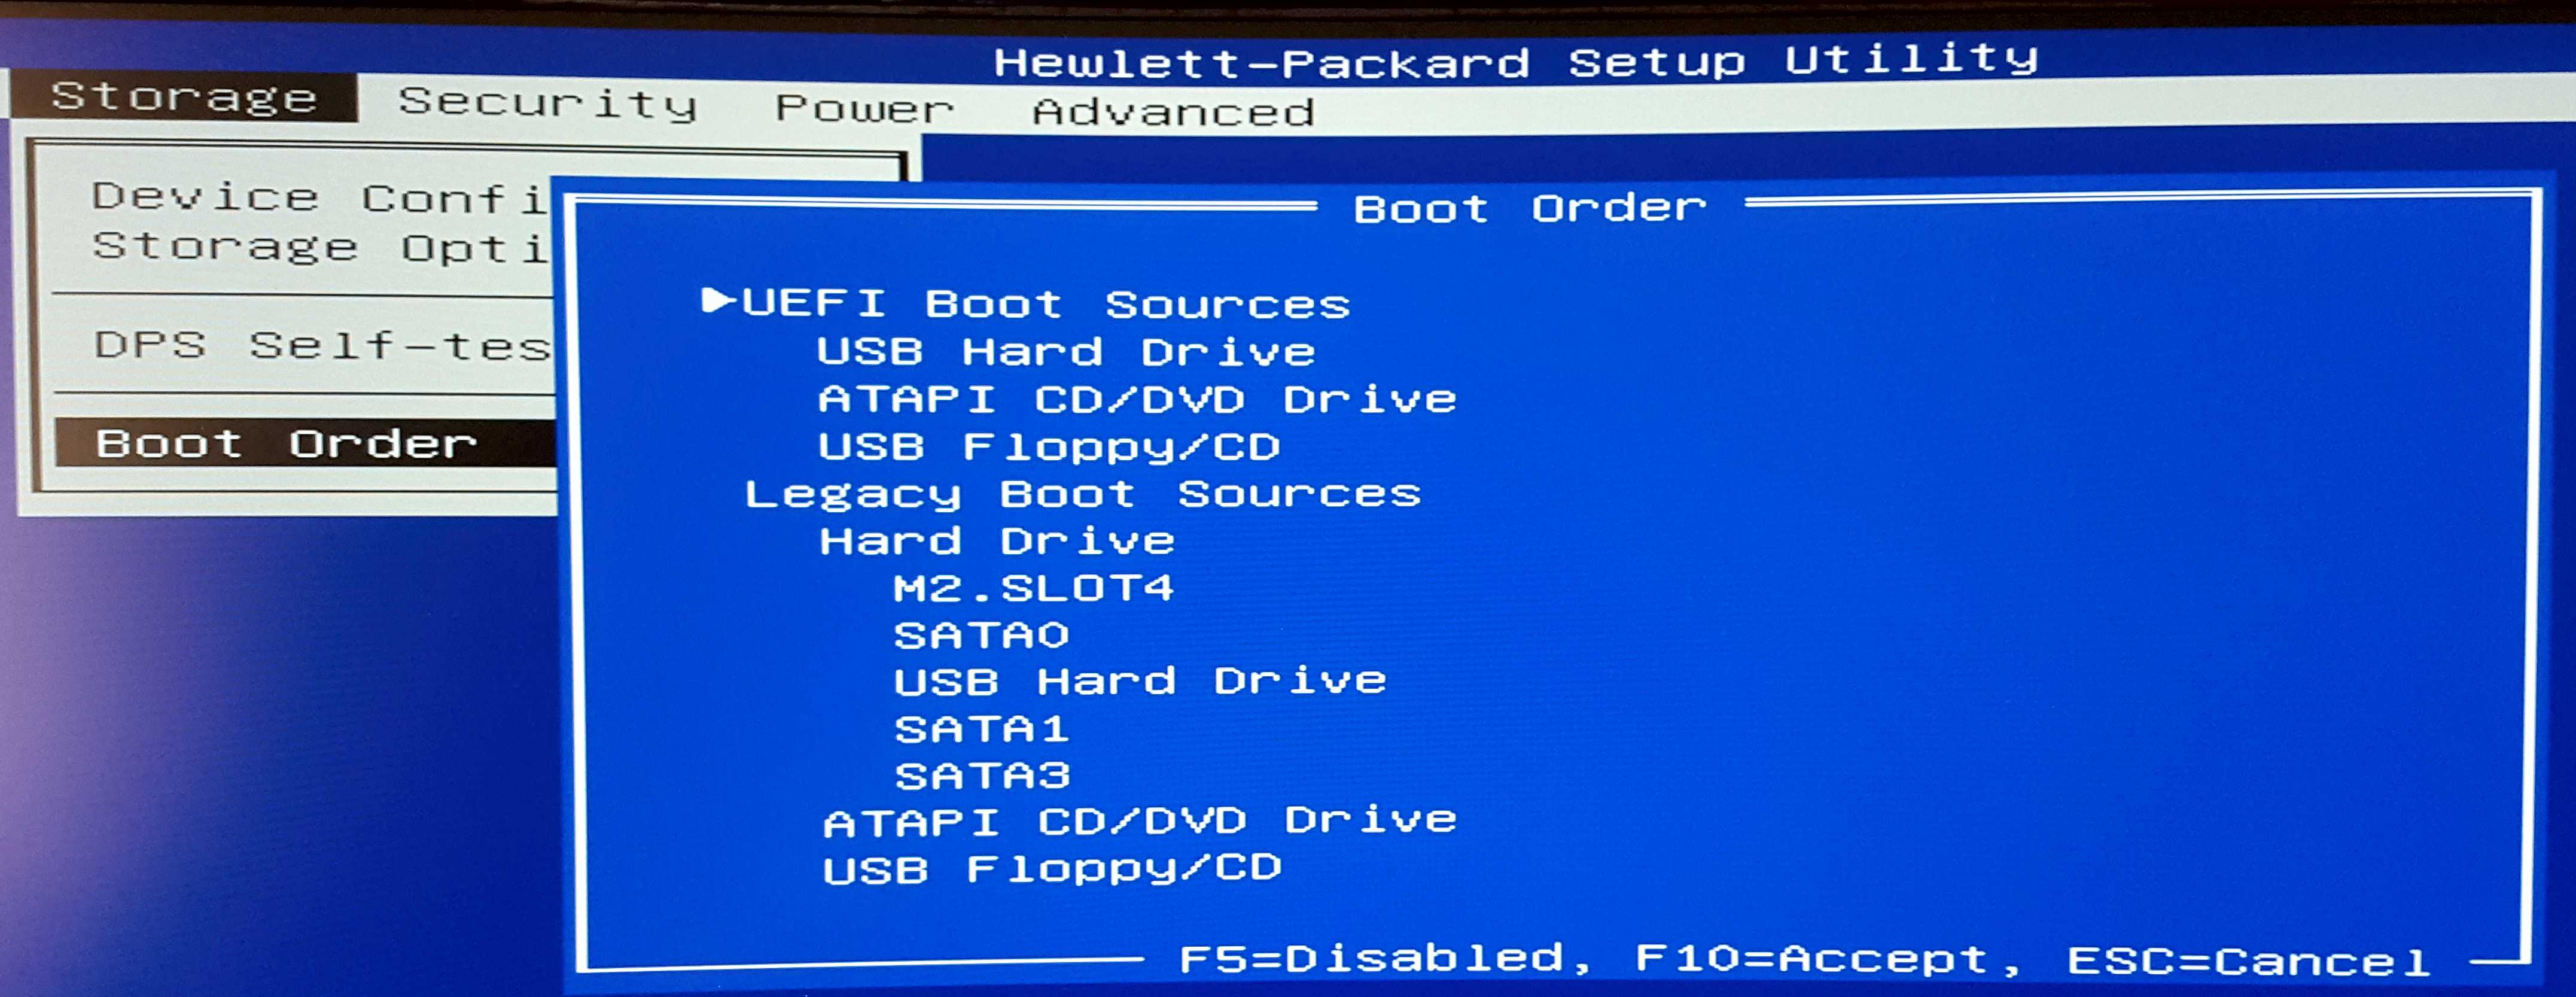 Hp Z620 Boot From Usb